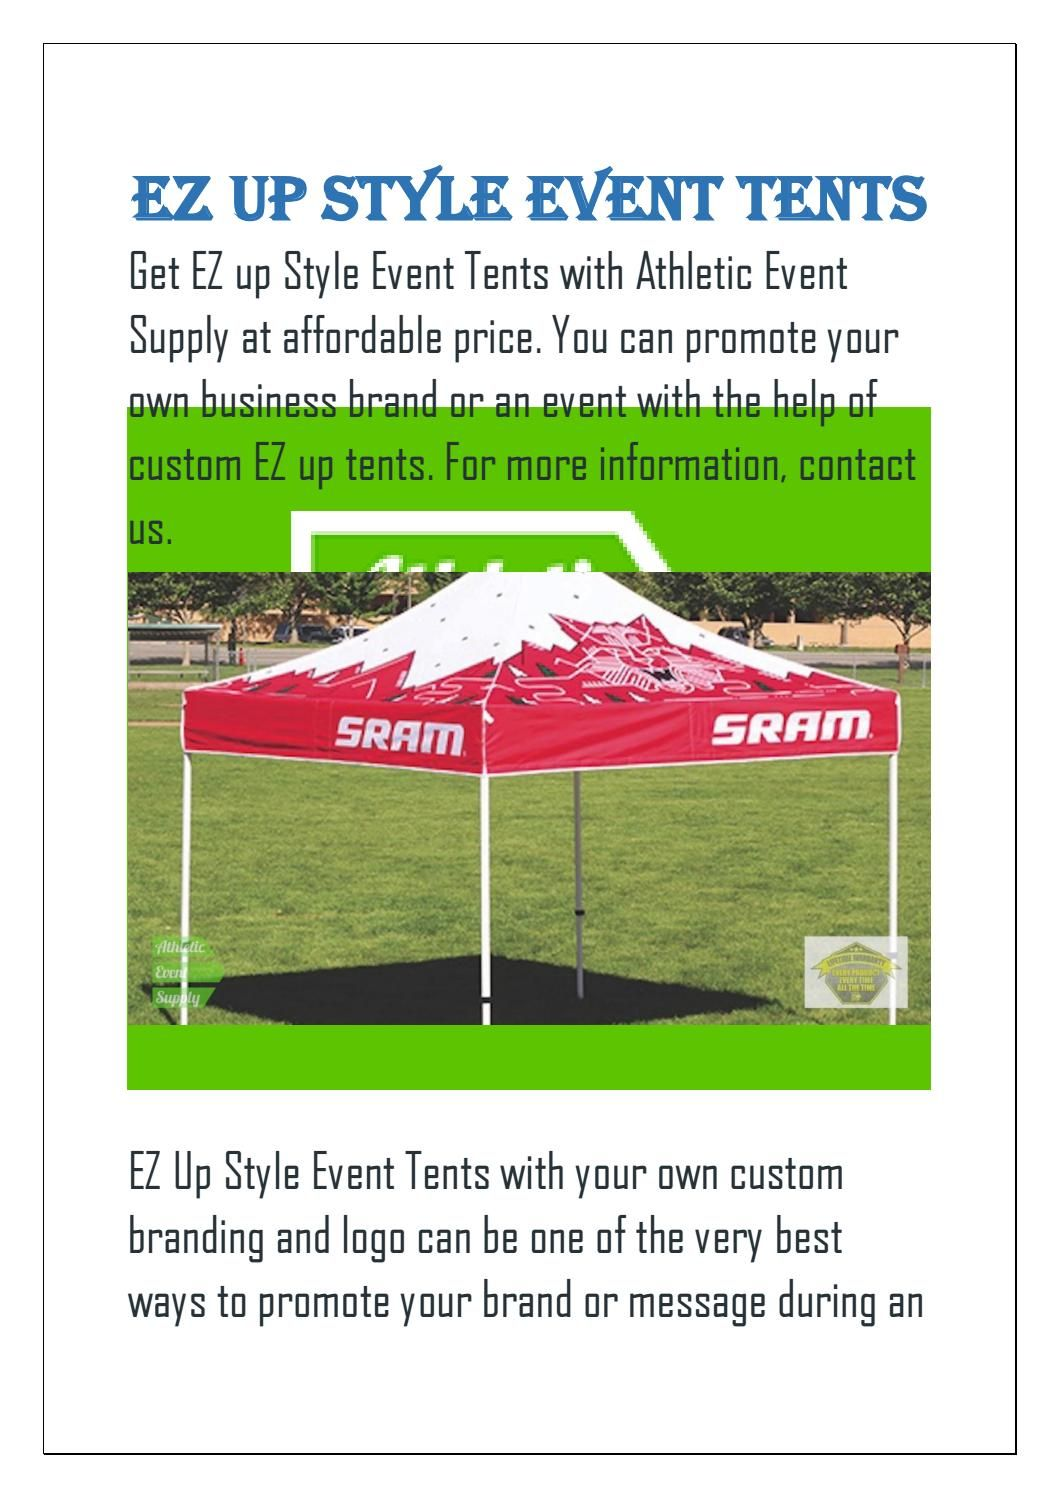 Ez Up Style Event Tents And Custom Pop Up Tents And Canopies Come In A Range Of Sizes Perfect For Promoting Your Business And Brand At Trade Shows And